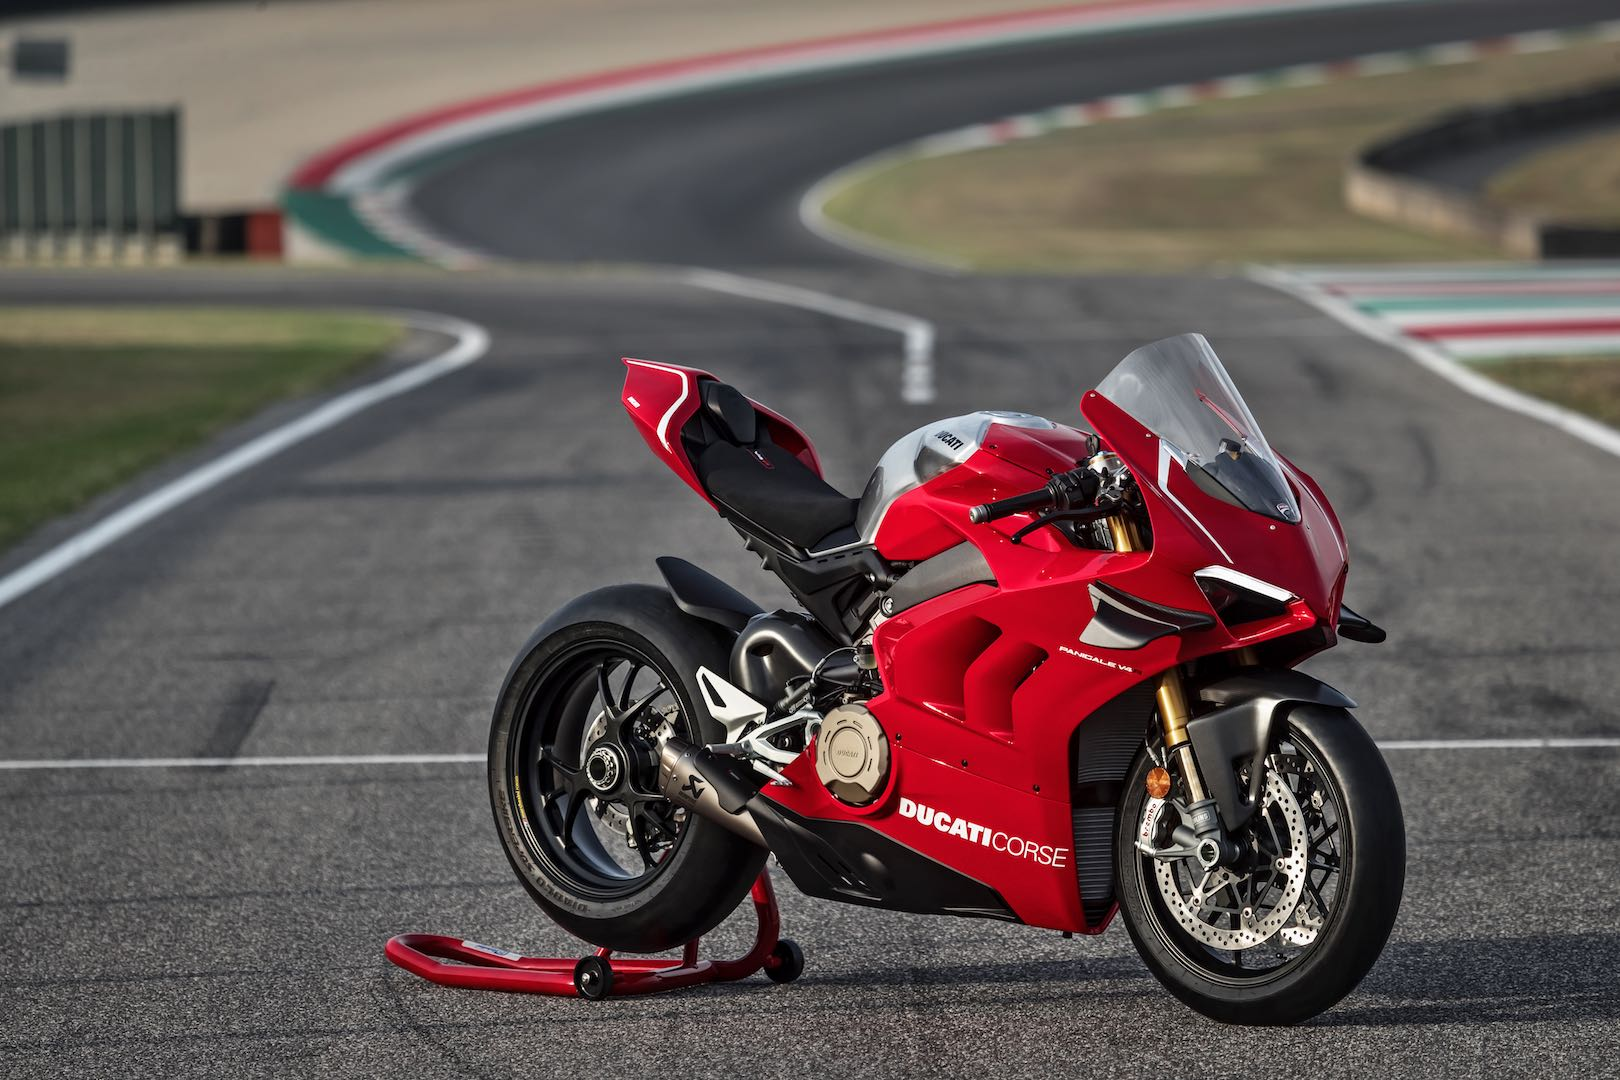 ducati panigale v4 r first look ready for 2019 worldsbk 16 fast facts. Black Bedroom Furniture Sets. Home Design Ideas